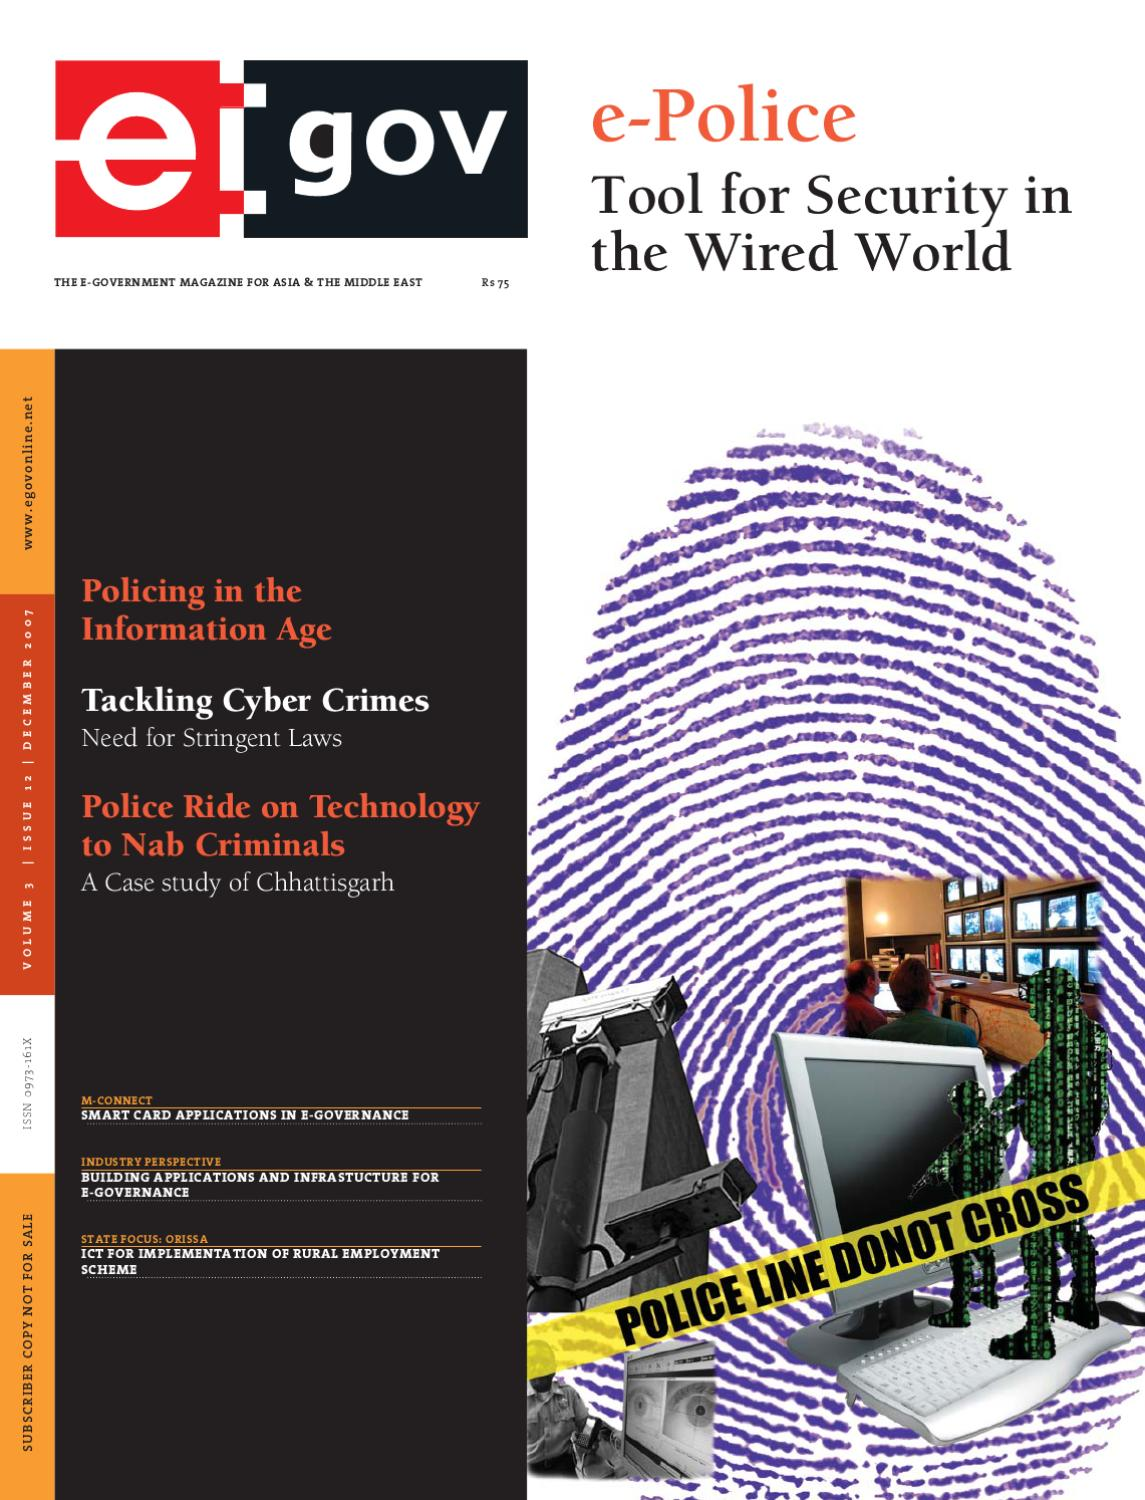 e-Police Tool for Security in the Wired World: December 2007